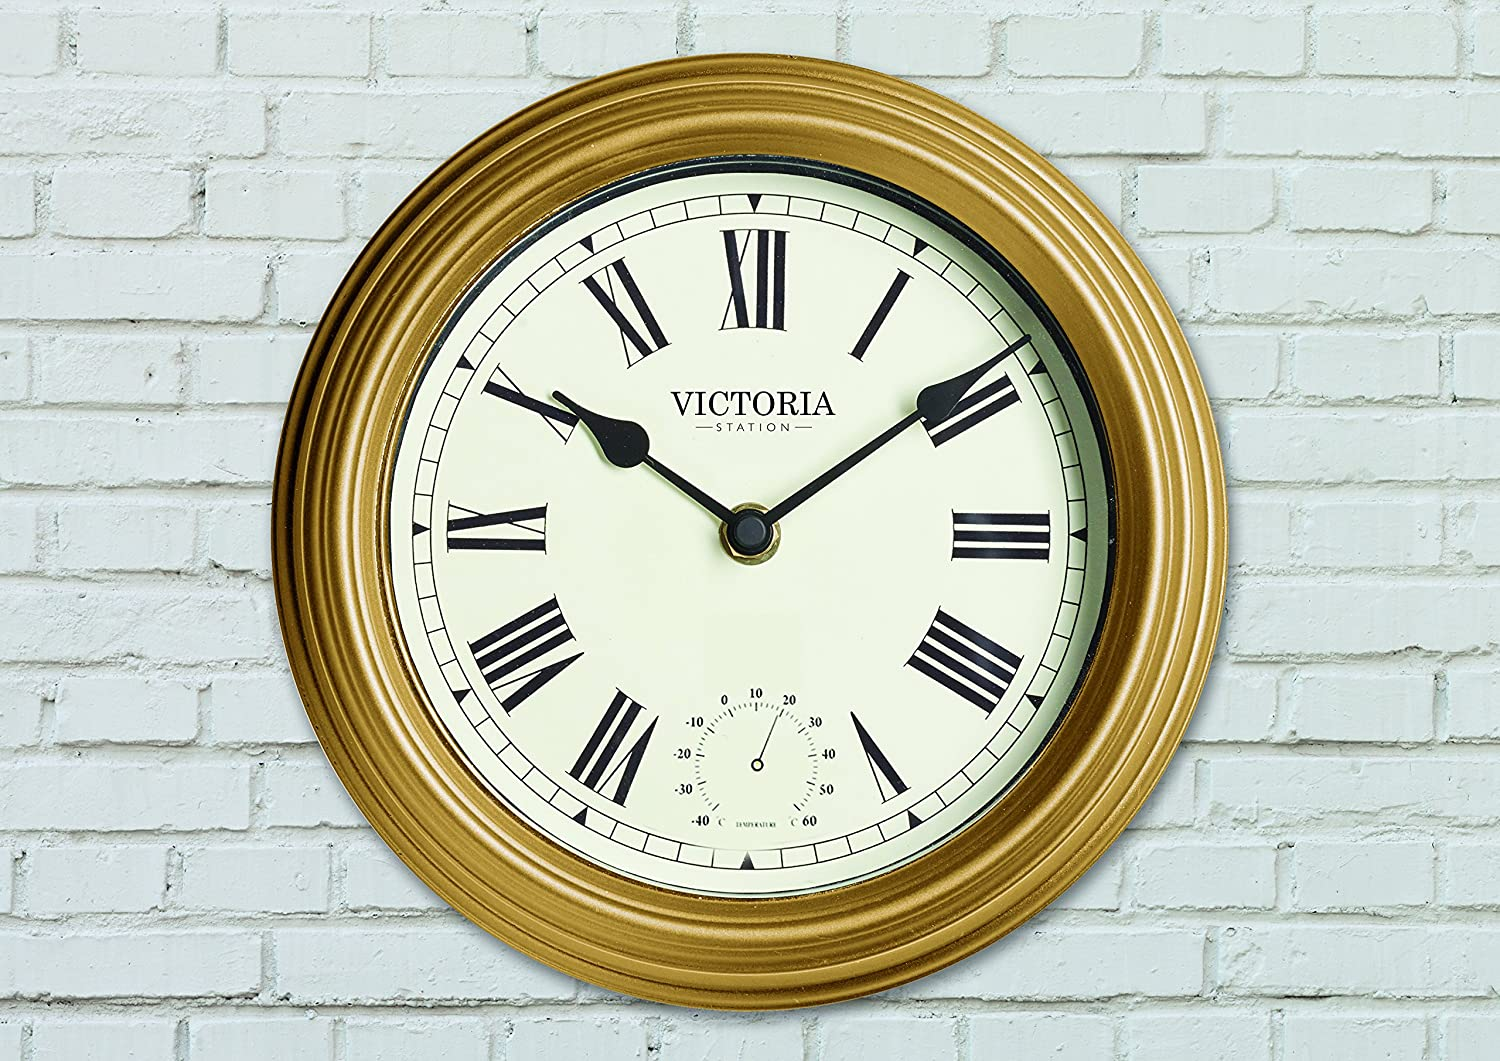 The Garden /& Home Co 7x22x22 cm The Victoria Station Clock Gold